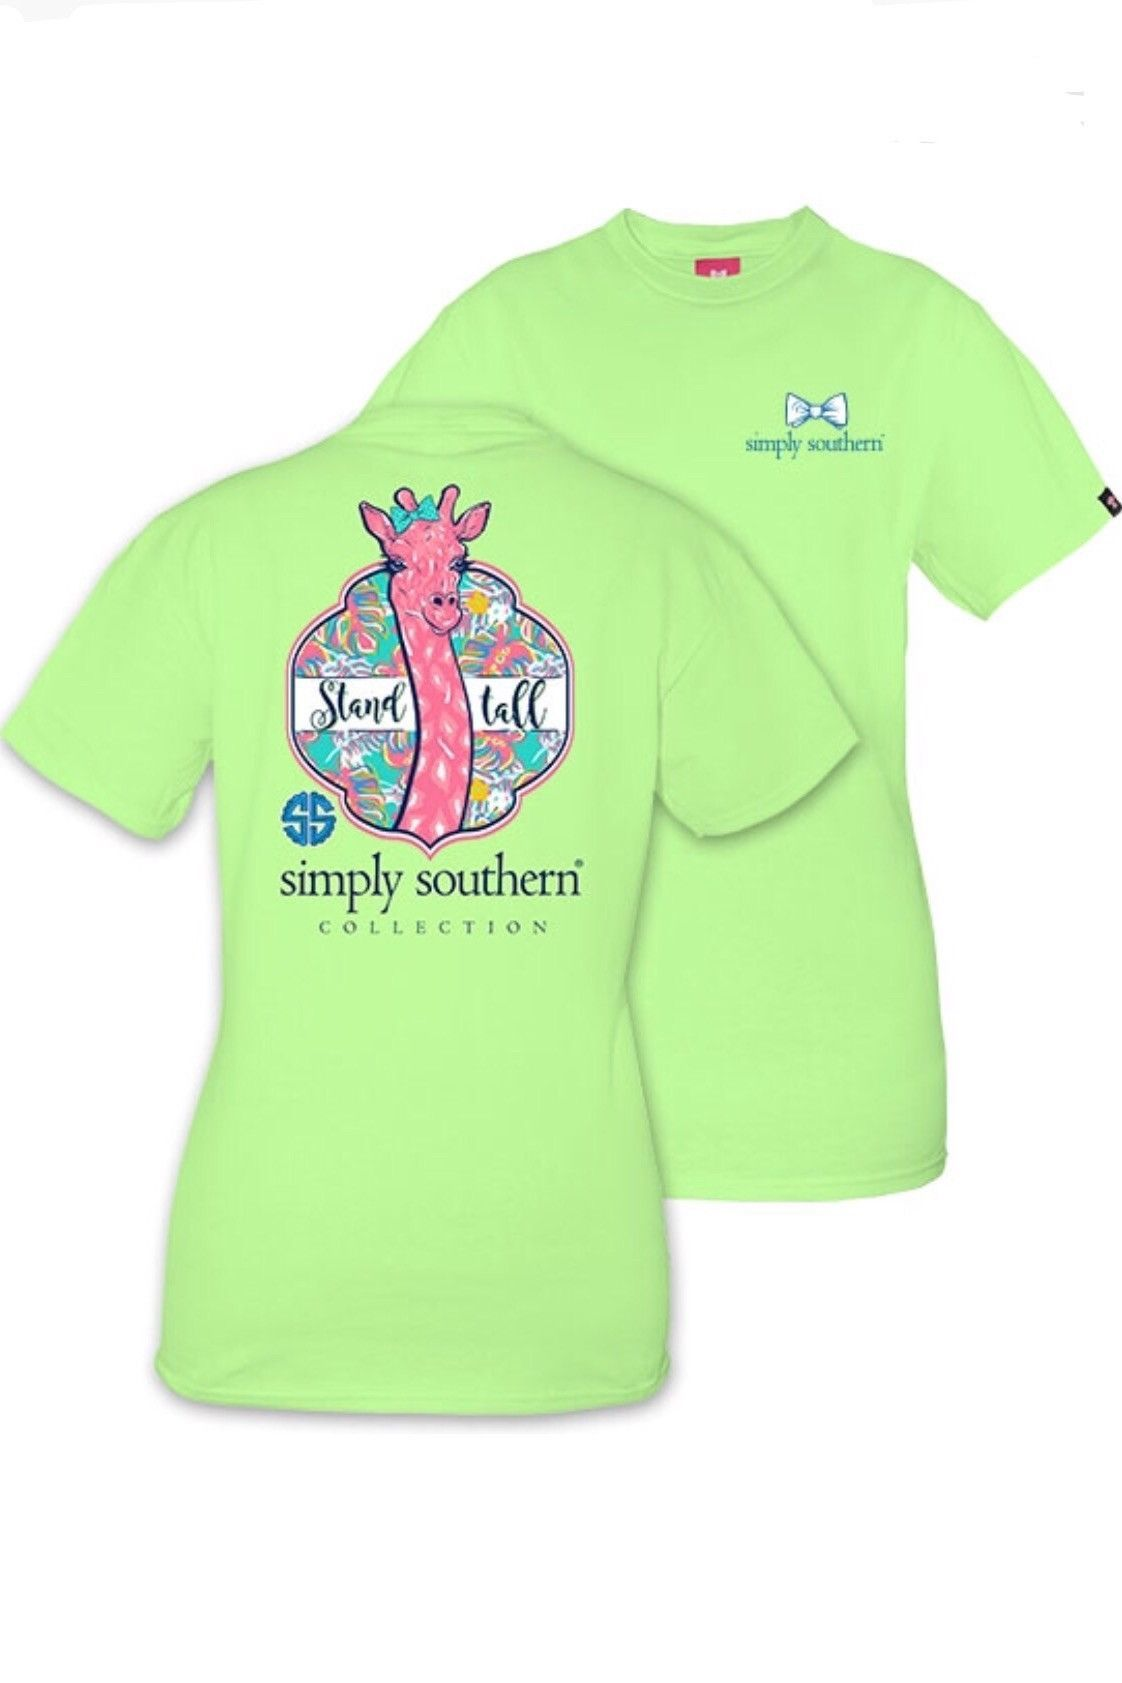 f311525c4 Simply southern youth t-shirt in the color limeaide green with an adorable  pink giraffe on the back and the saying